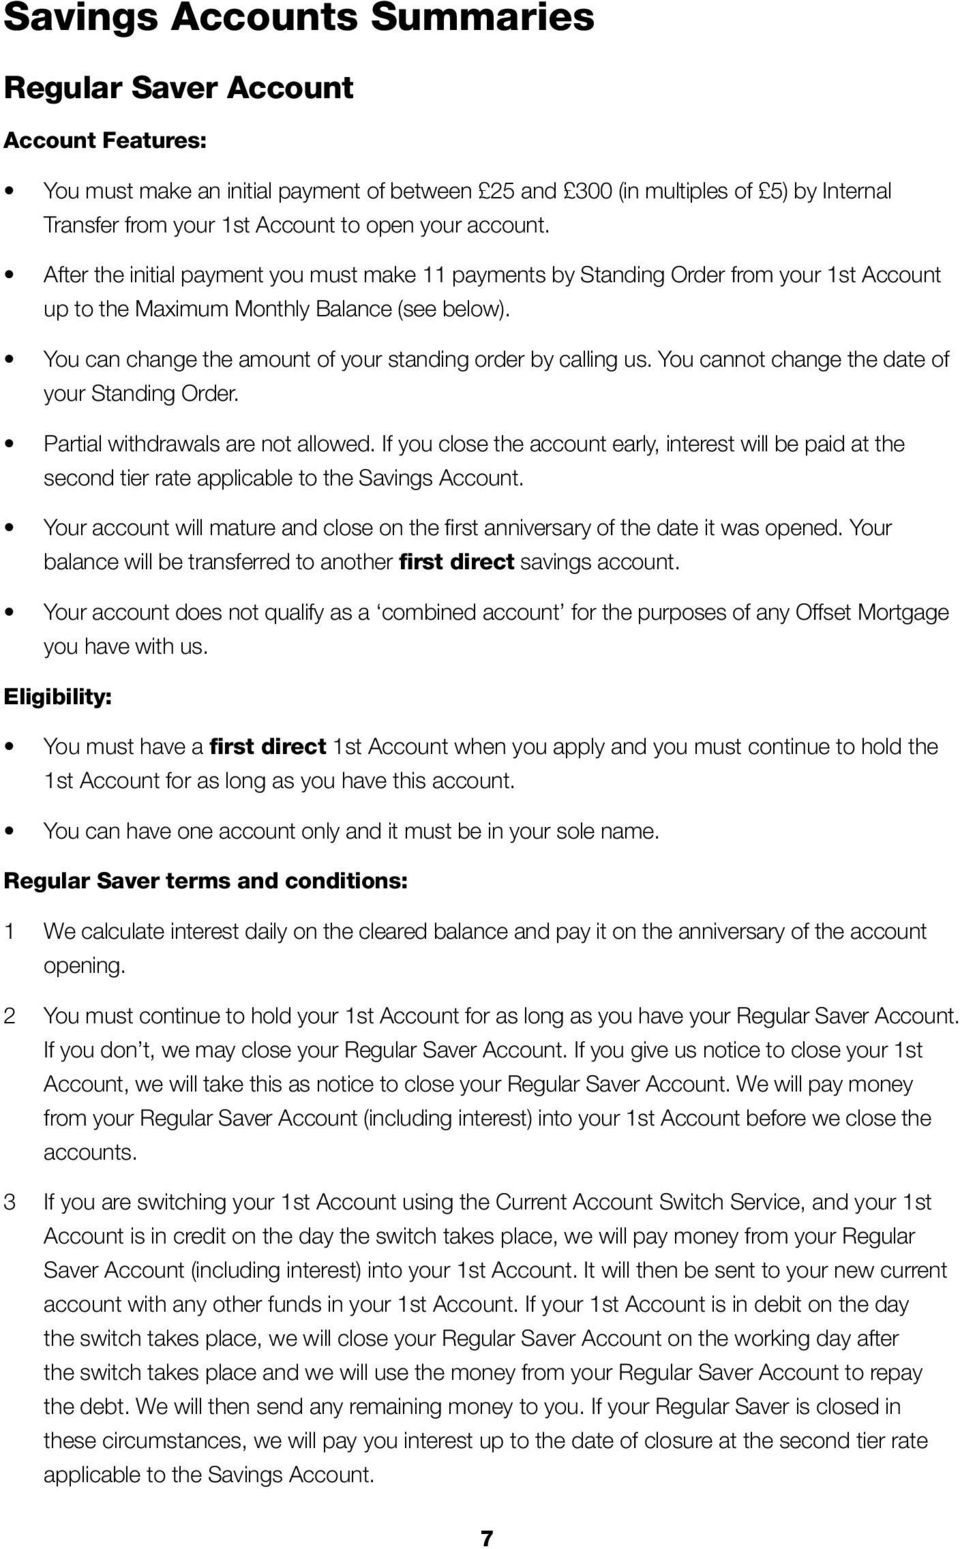 Eligibility: first direct 1st Account when you apply and you must continue to hold the 1st Account for as long as you have this account.